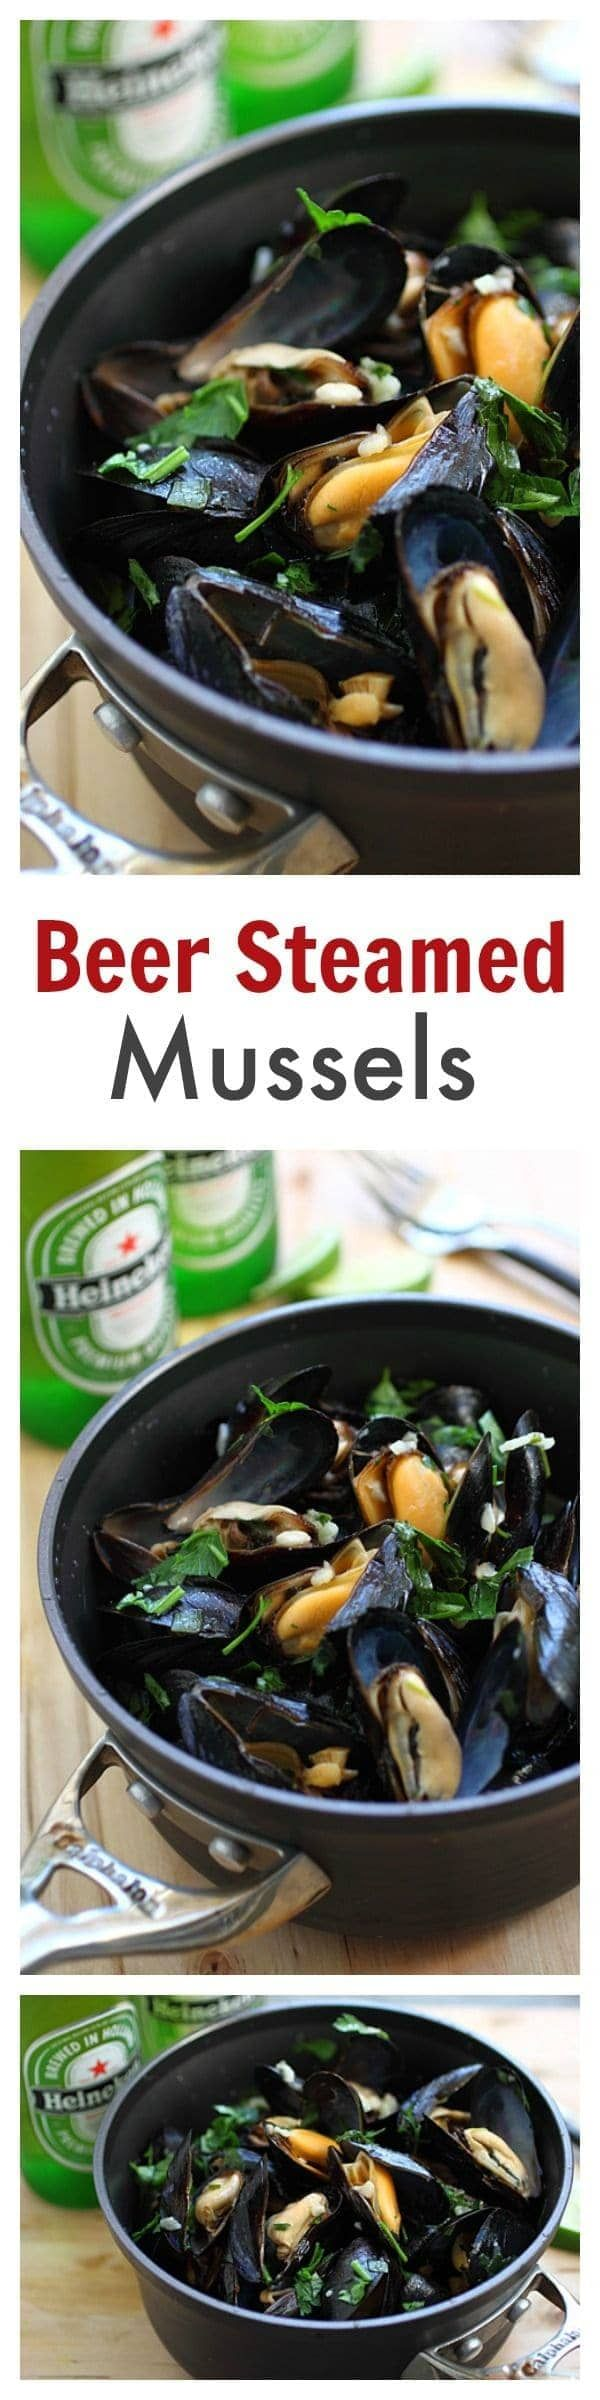 Beer Steamed Mussels - DELICIOUS mussels cooked with beer and garlic ...